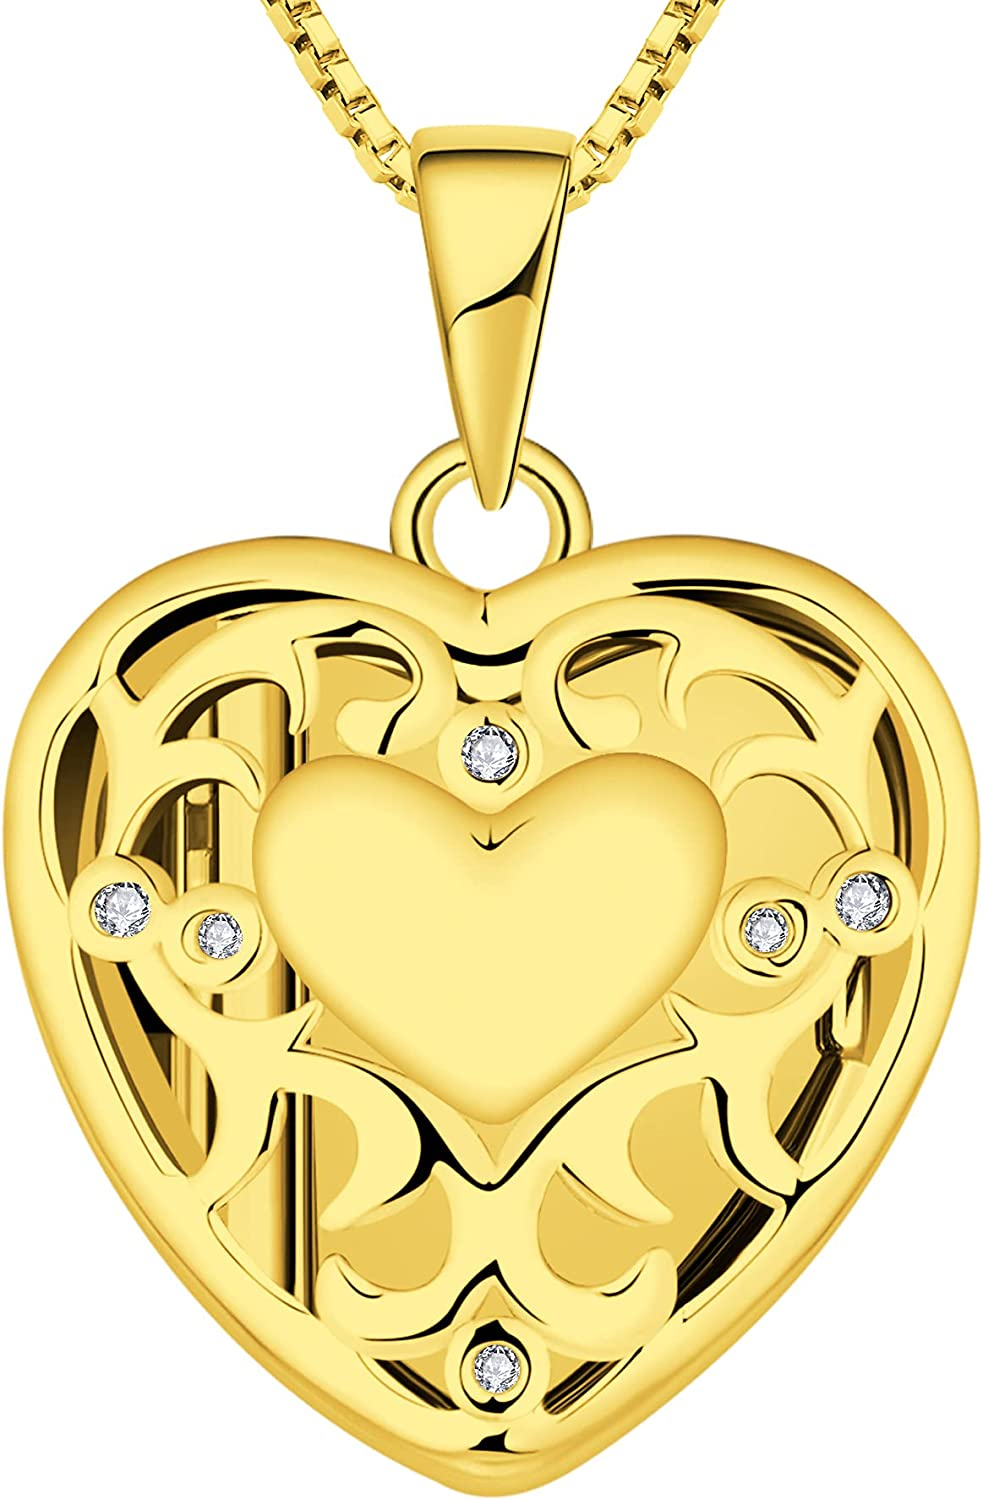 Max 84% OFF YL Heart Locket Picture Necklace Personalize 925 Sterling Silver 2021 new